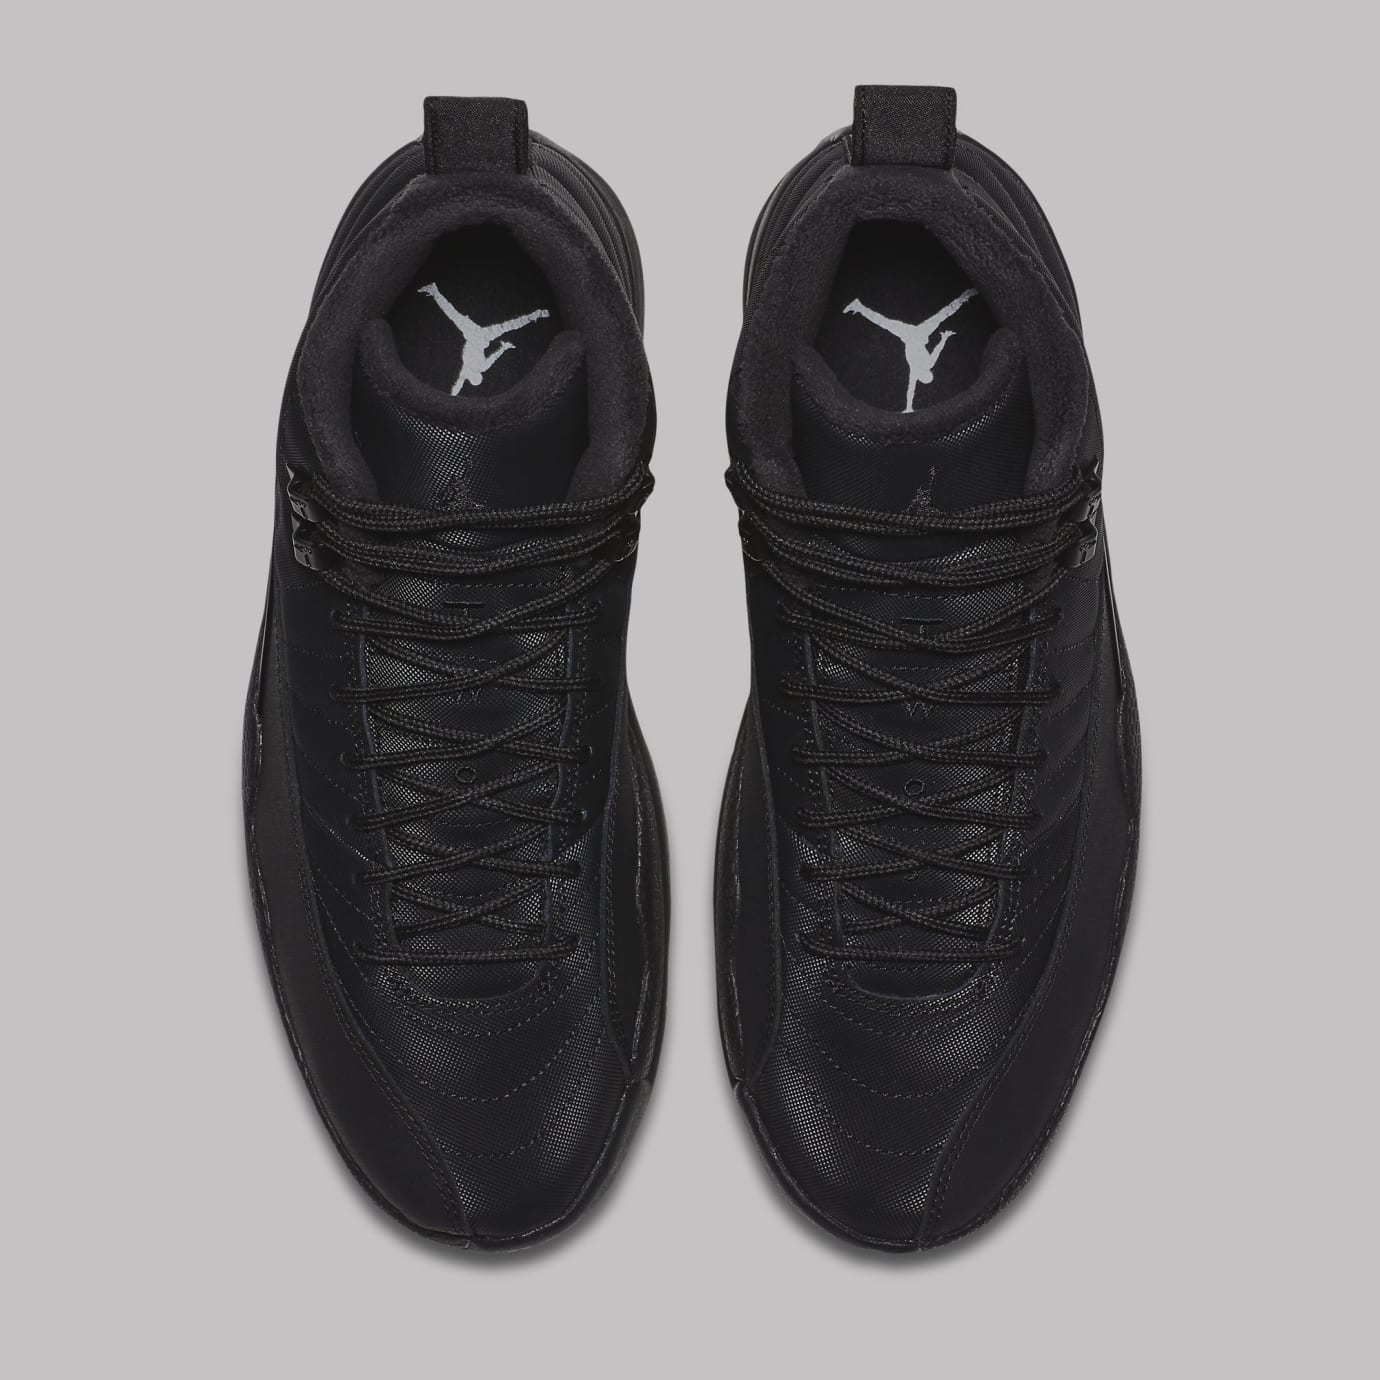 the best attitude f5ff1 65b9c Air Jordan 12 Black Winterized BQ6851-001 Release Date ...